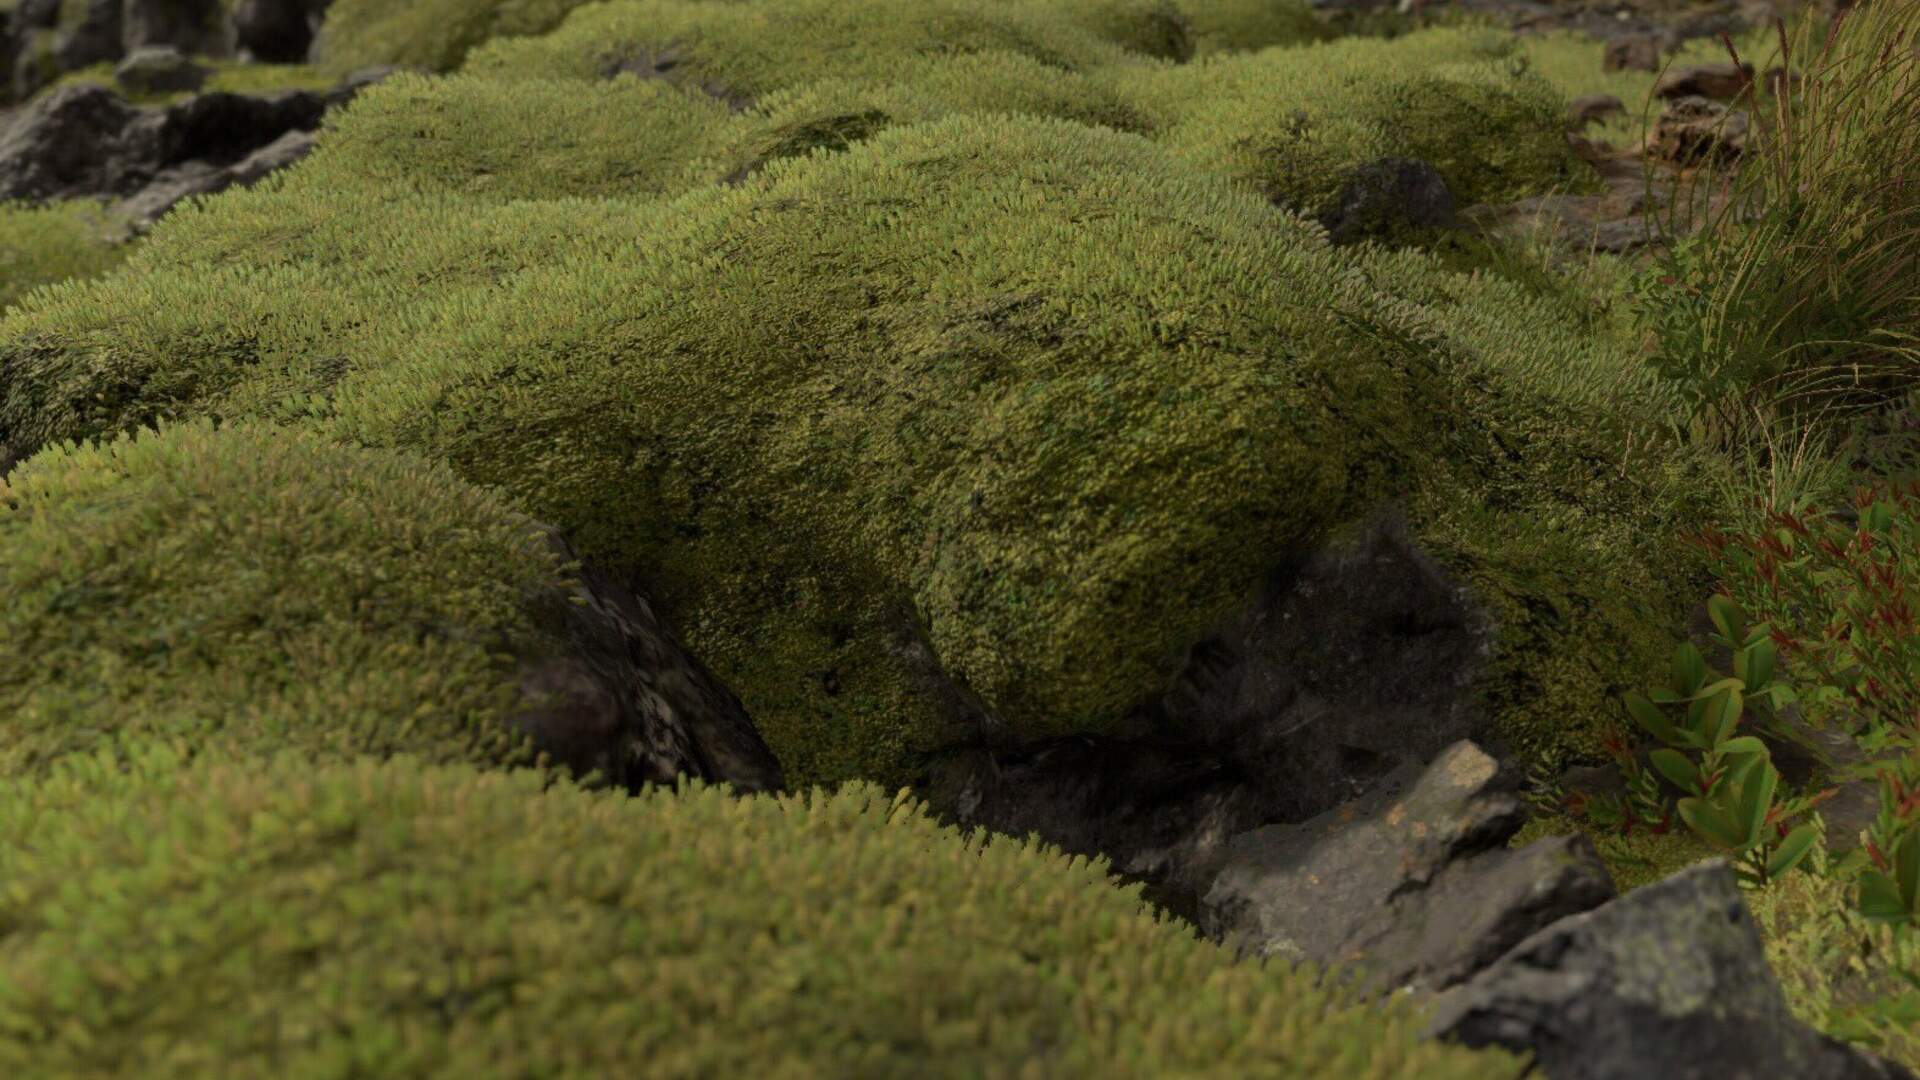 Kojima Tweets a Picture of Moss and Gets 1,000 Retweets and Counting